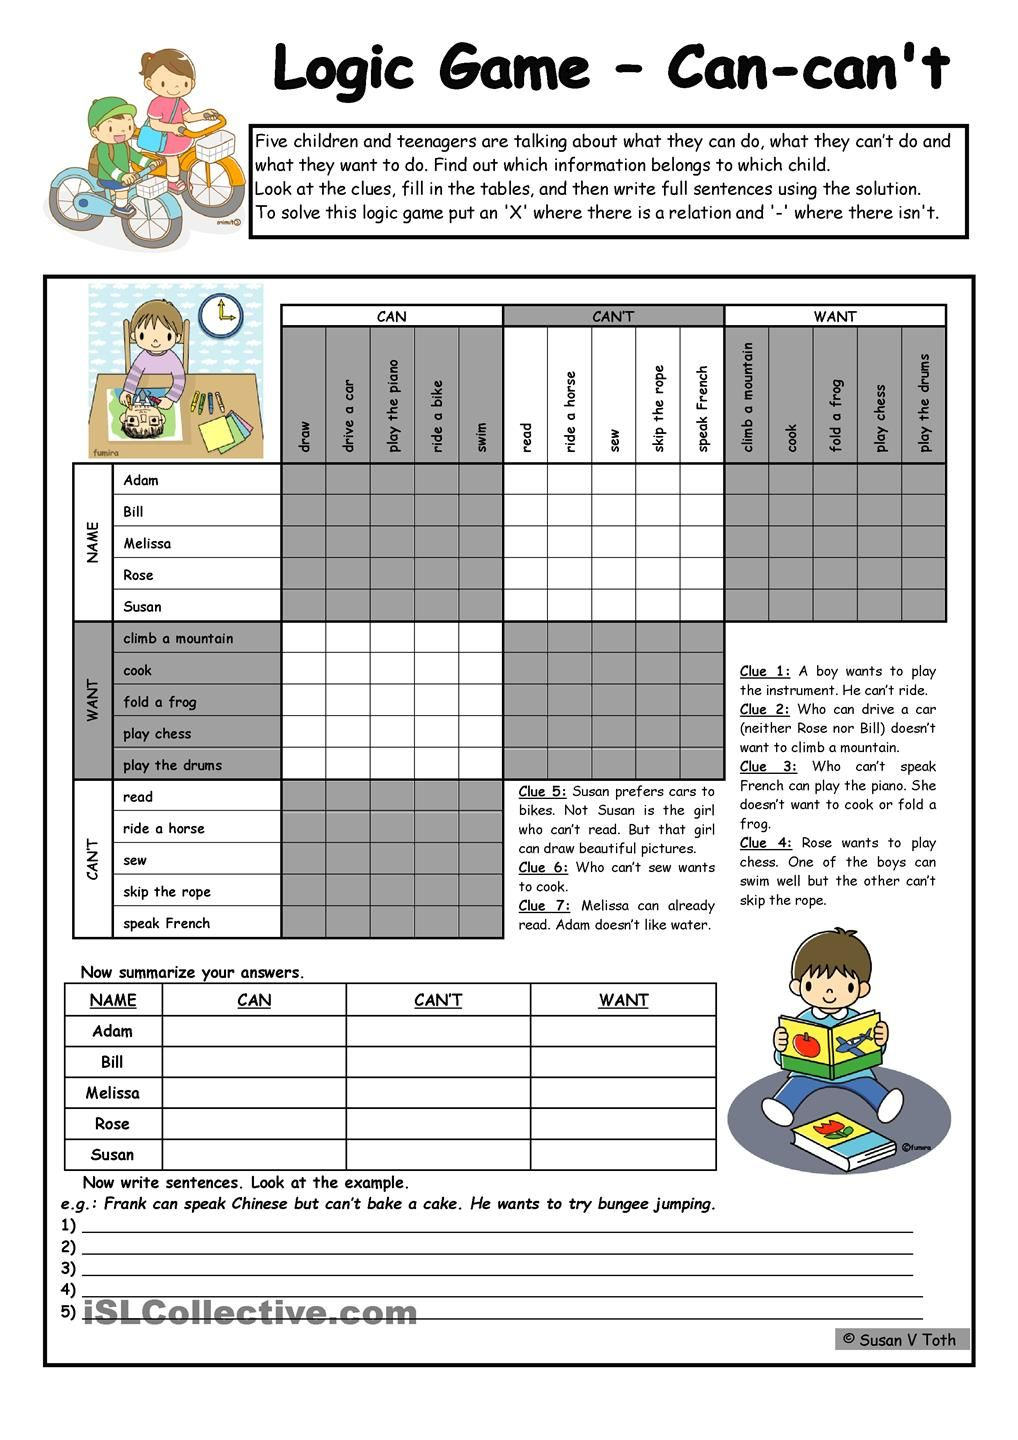 Logic Game 47th Can Can T Want Upper Elementary With Key Fully Editable B W Logic Games Logic Games For Kids Logic Puzzles Brain Teasers [ 1440 x 1018 Pixel ]